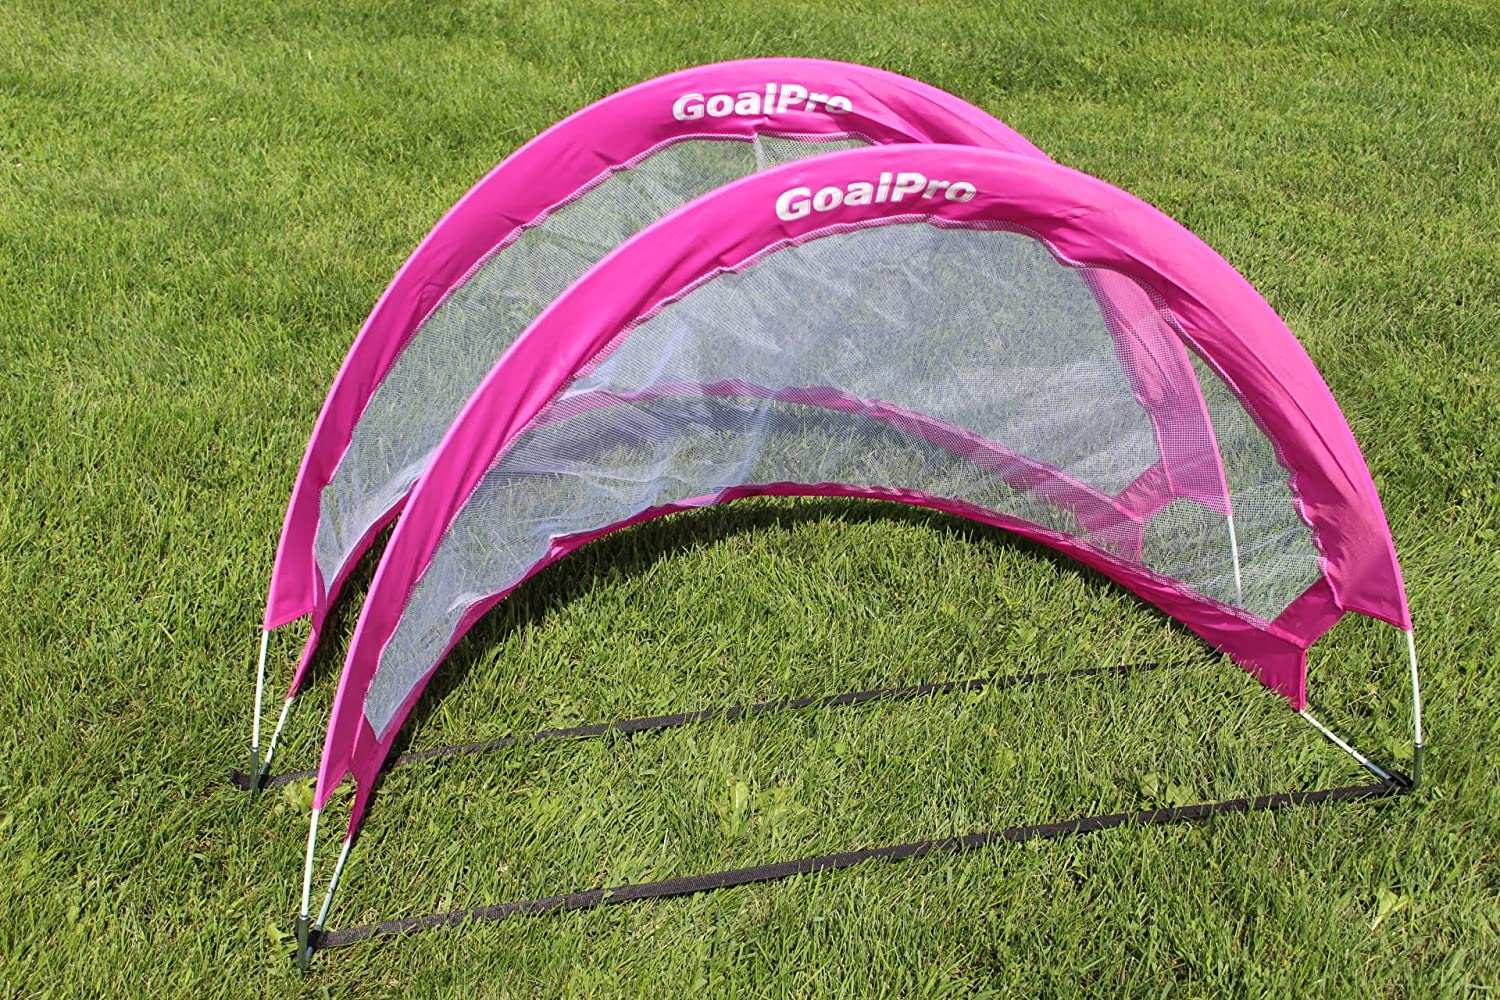 goalpro Goal Pro Pop Up Soccer Goal – 2つポータブルSoccer Nets with Carryバッグ – サイズ4 ' FT B07BT635YVピンク